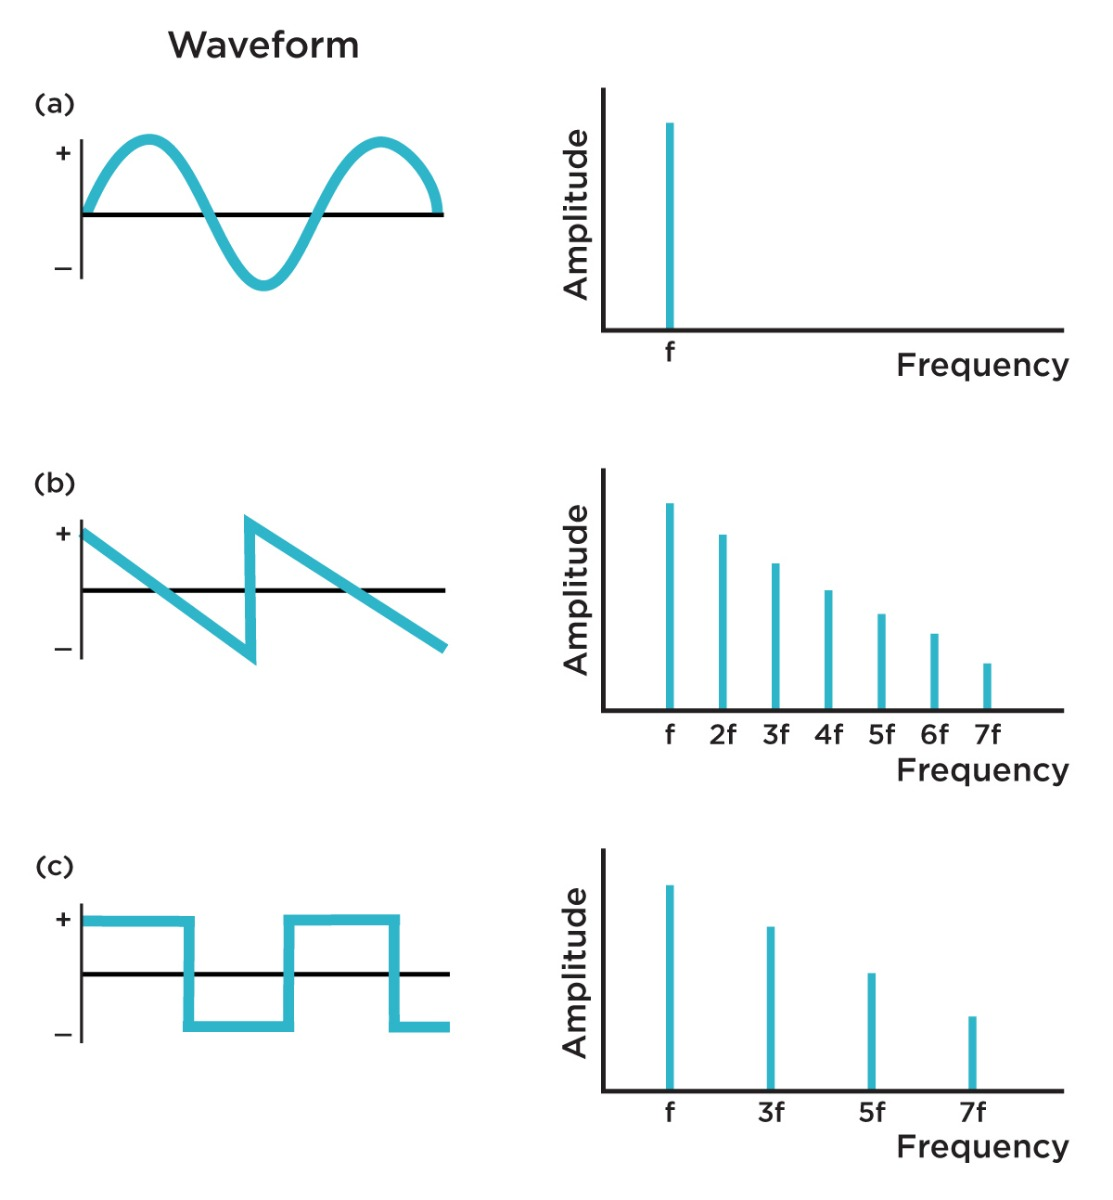 Waveshapes and spectral content for: a) Sine wave; b) Saw wave; c) Square wave